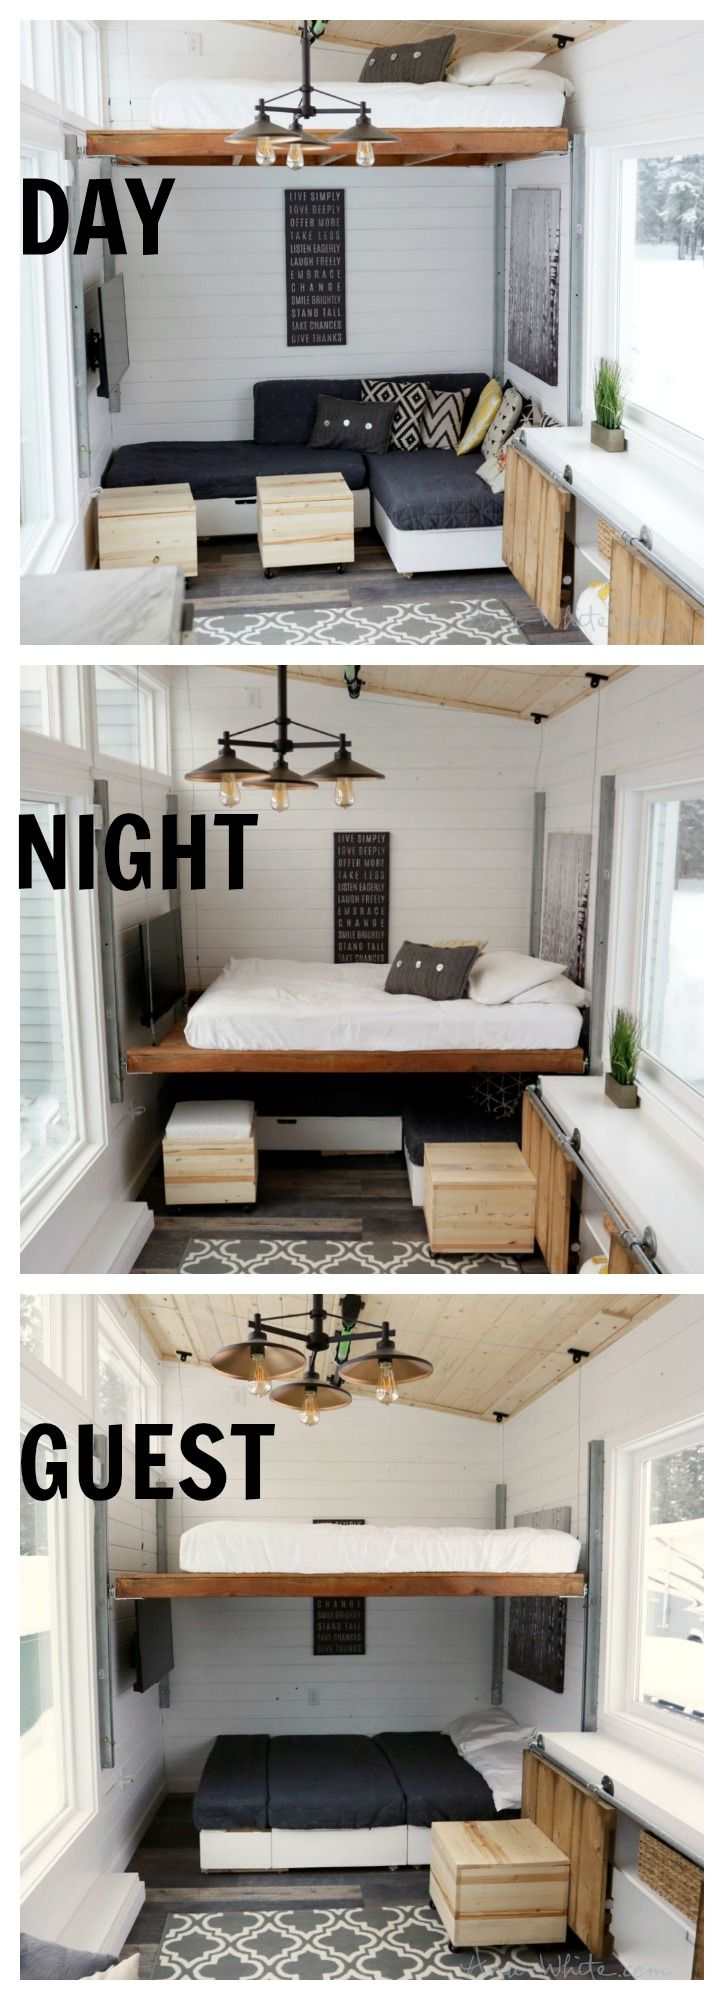 Astounding 17 Best Ideas About Tiny Houses On Pinterest Tiny Homes Mini Largest Home Design Picture Inspirations Pitcheantrous